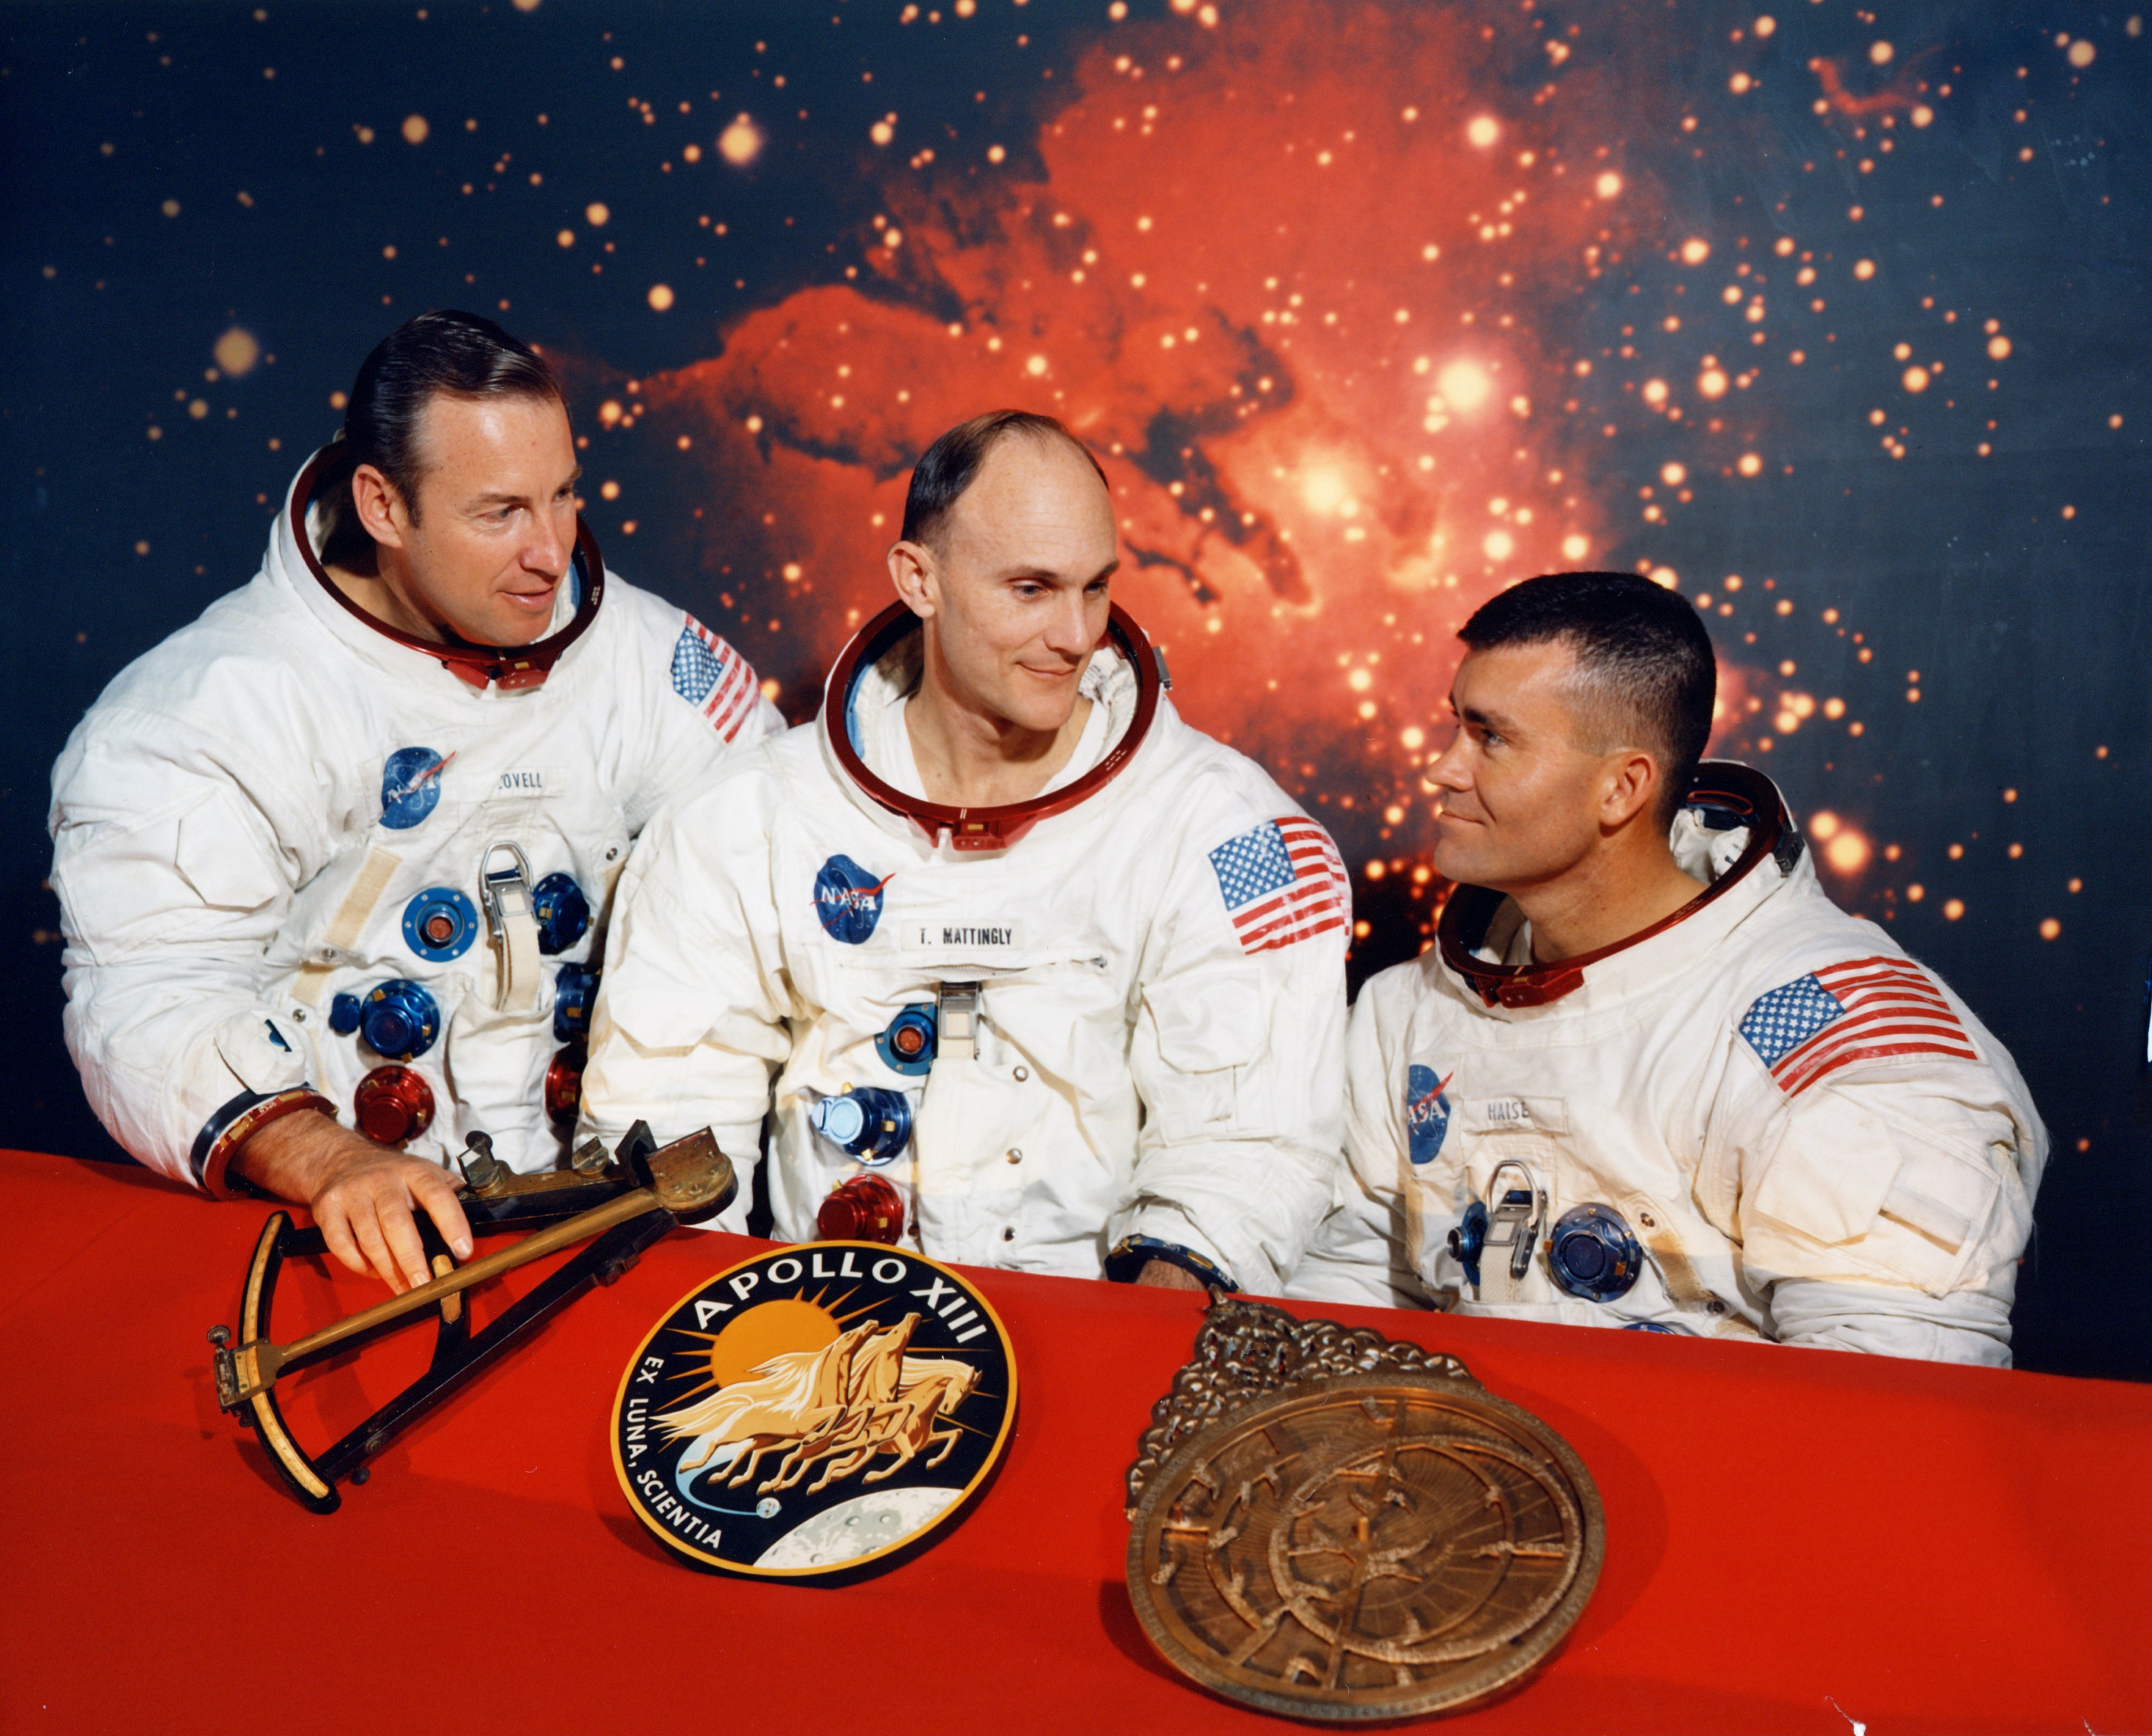 Apollo 13 Image Library.